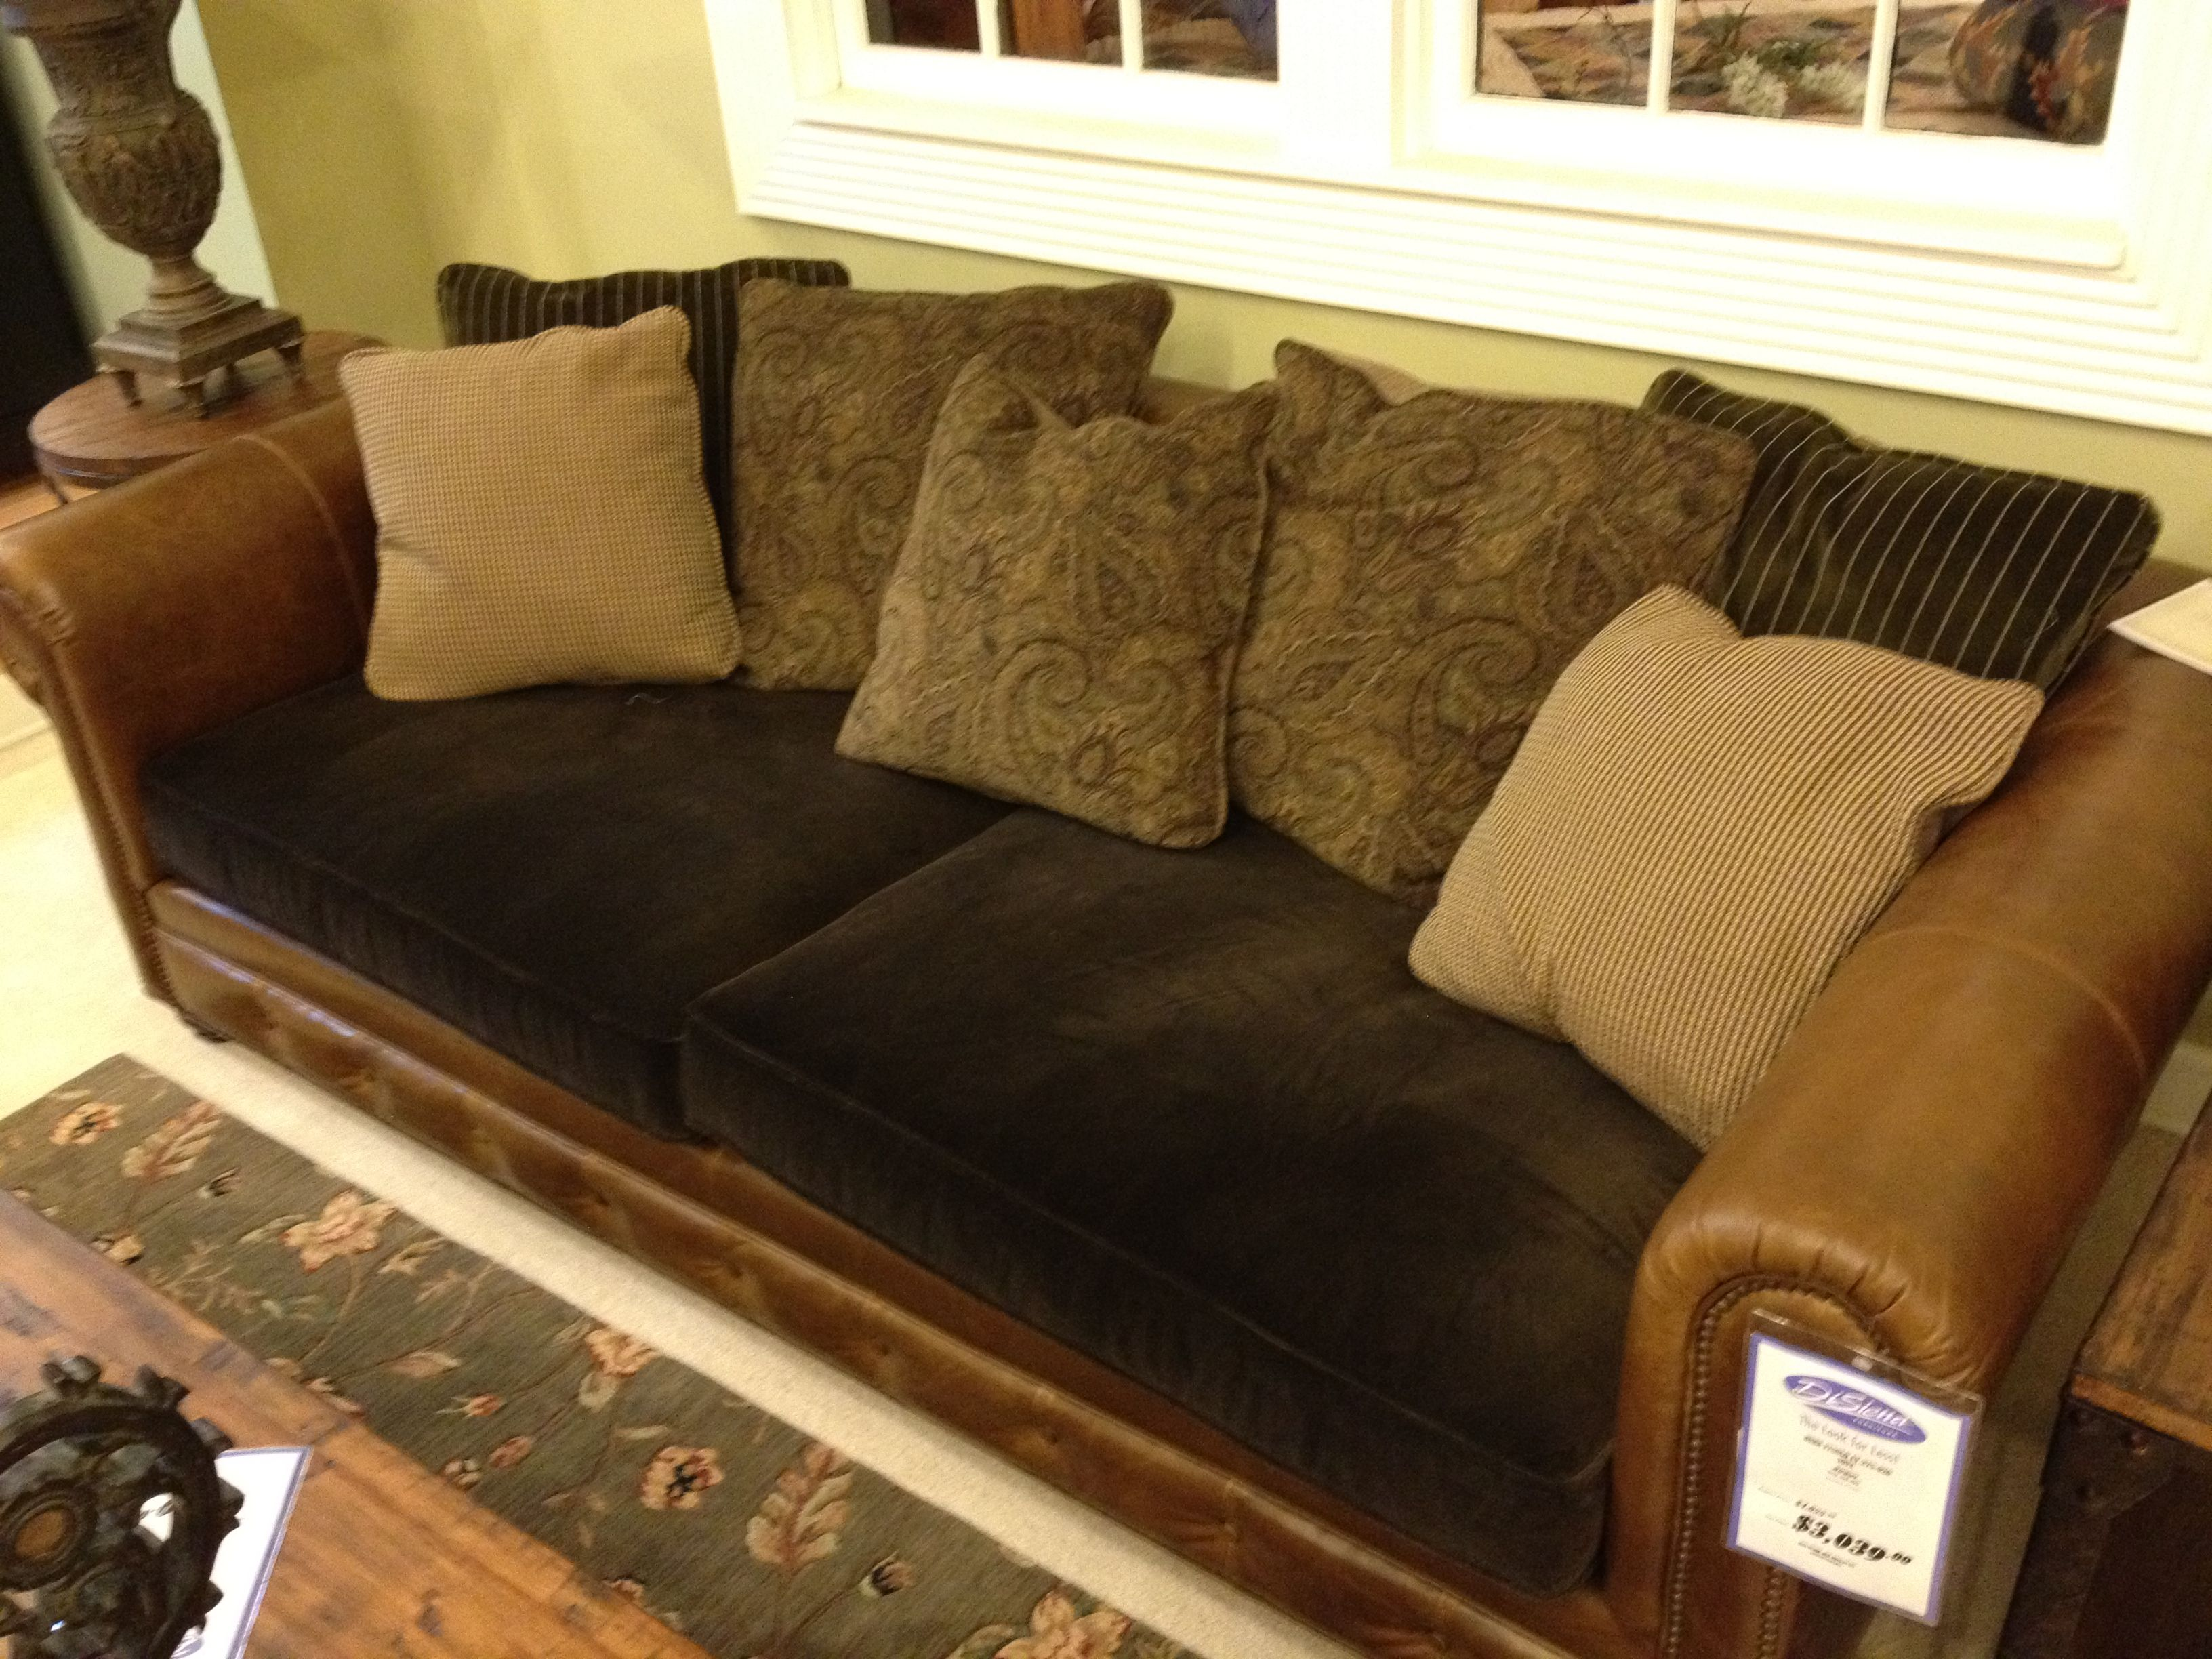 Leather couch with fabric cushions Furniture